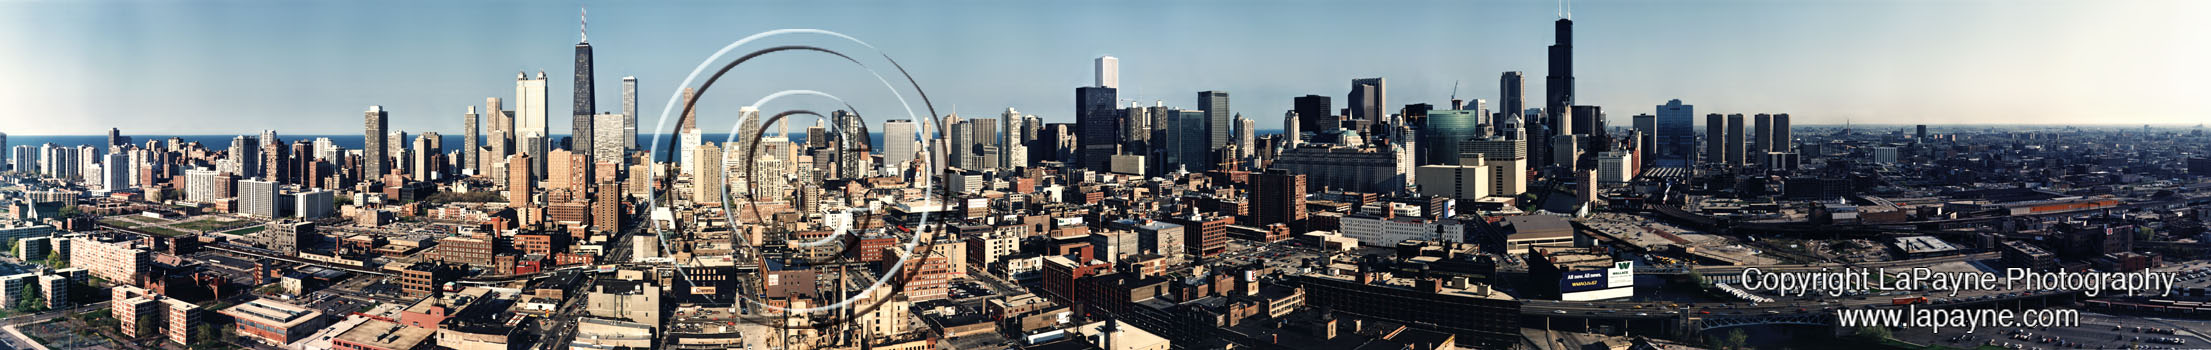 Chicago Skyline Panorama 1989